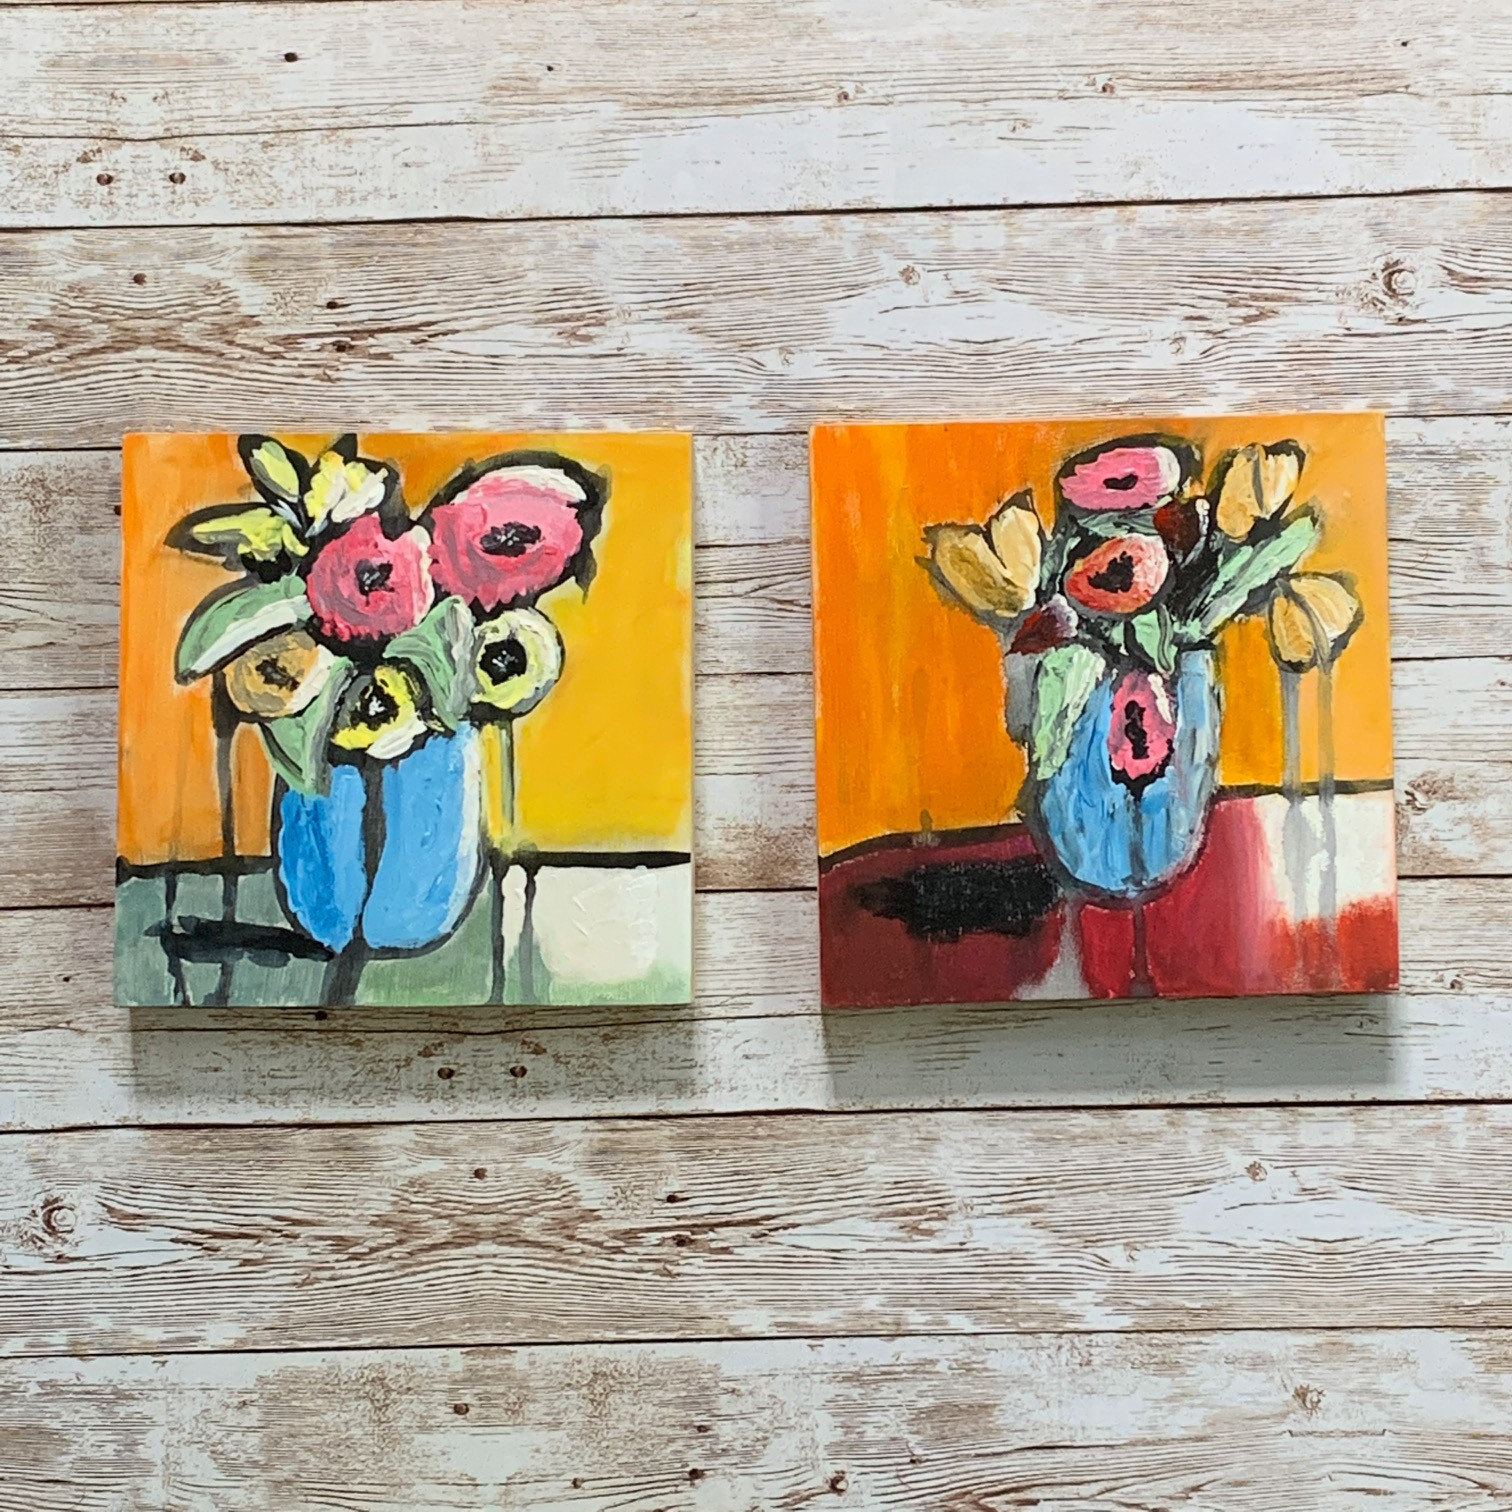 Abstract Florals 1 & 2